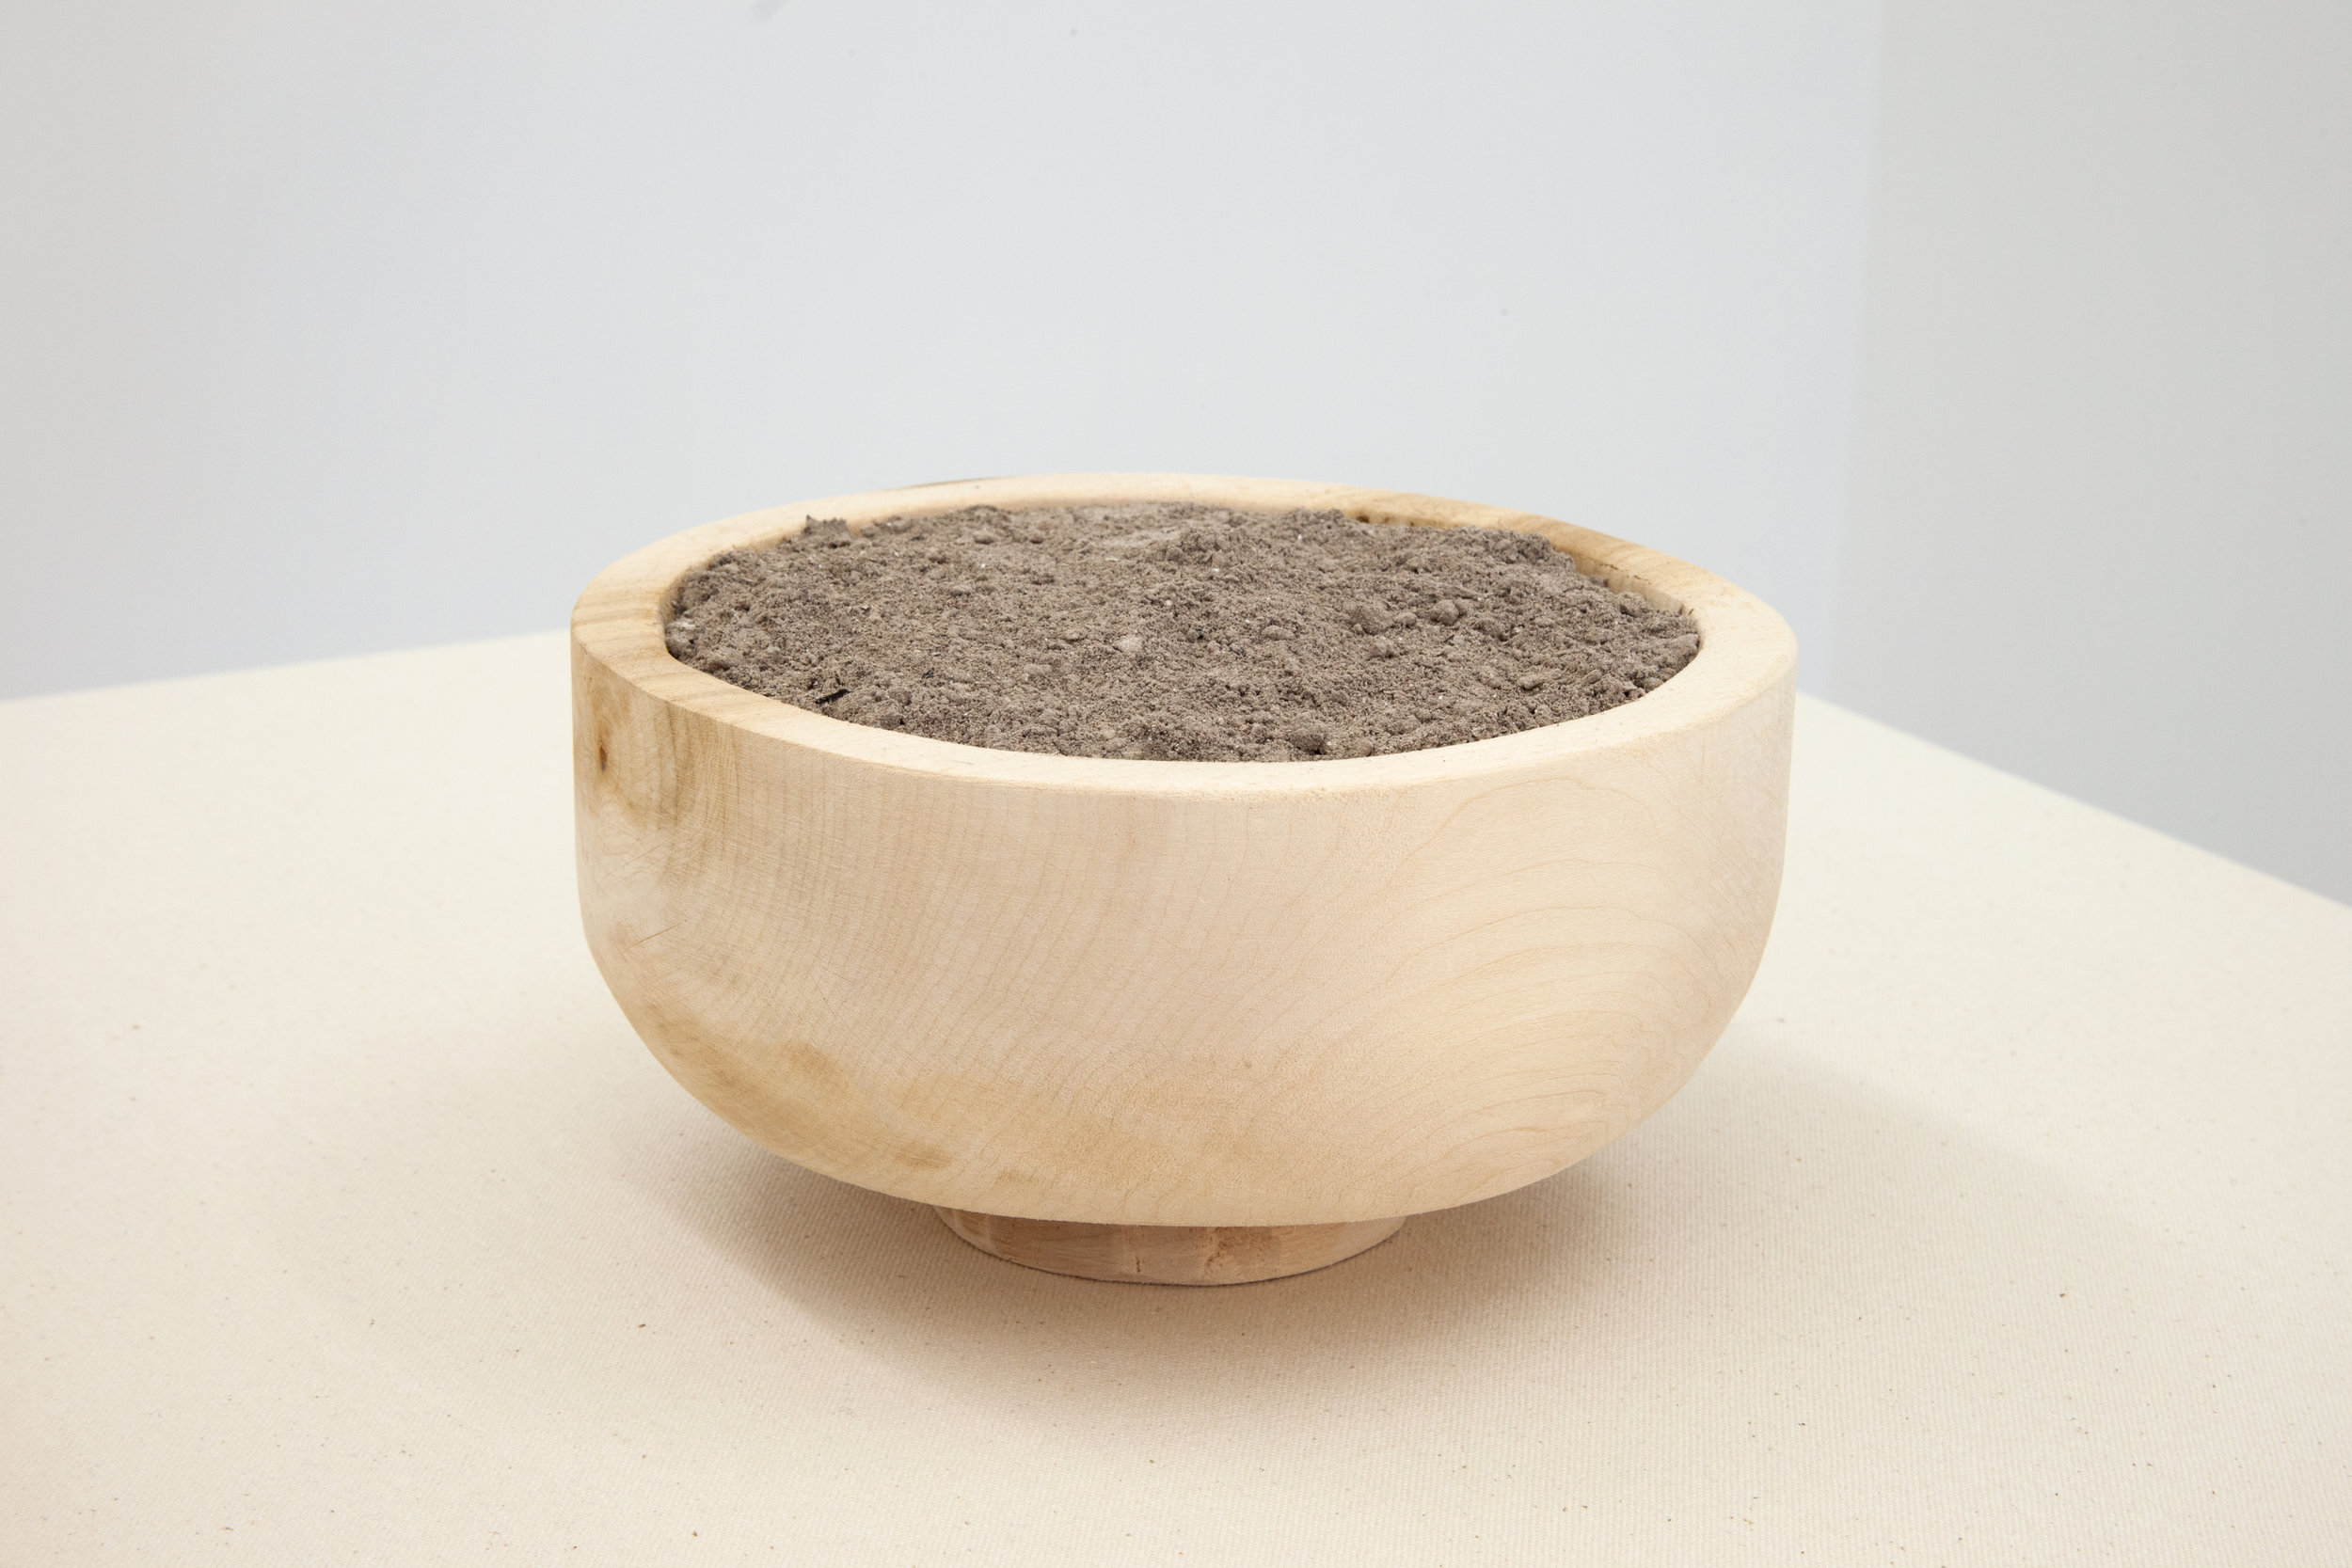 Elizabeth Atterbury,  Urn , 2018, Basswood and Ash, 7 x 7 x 3.62 in